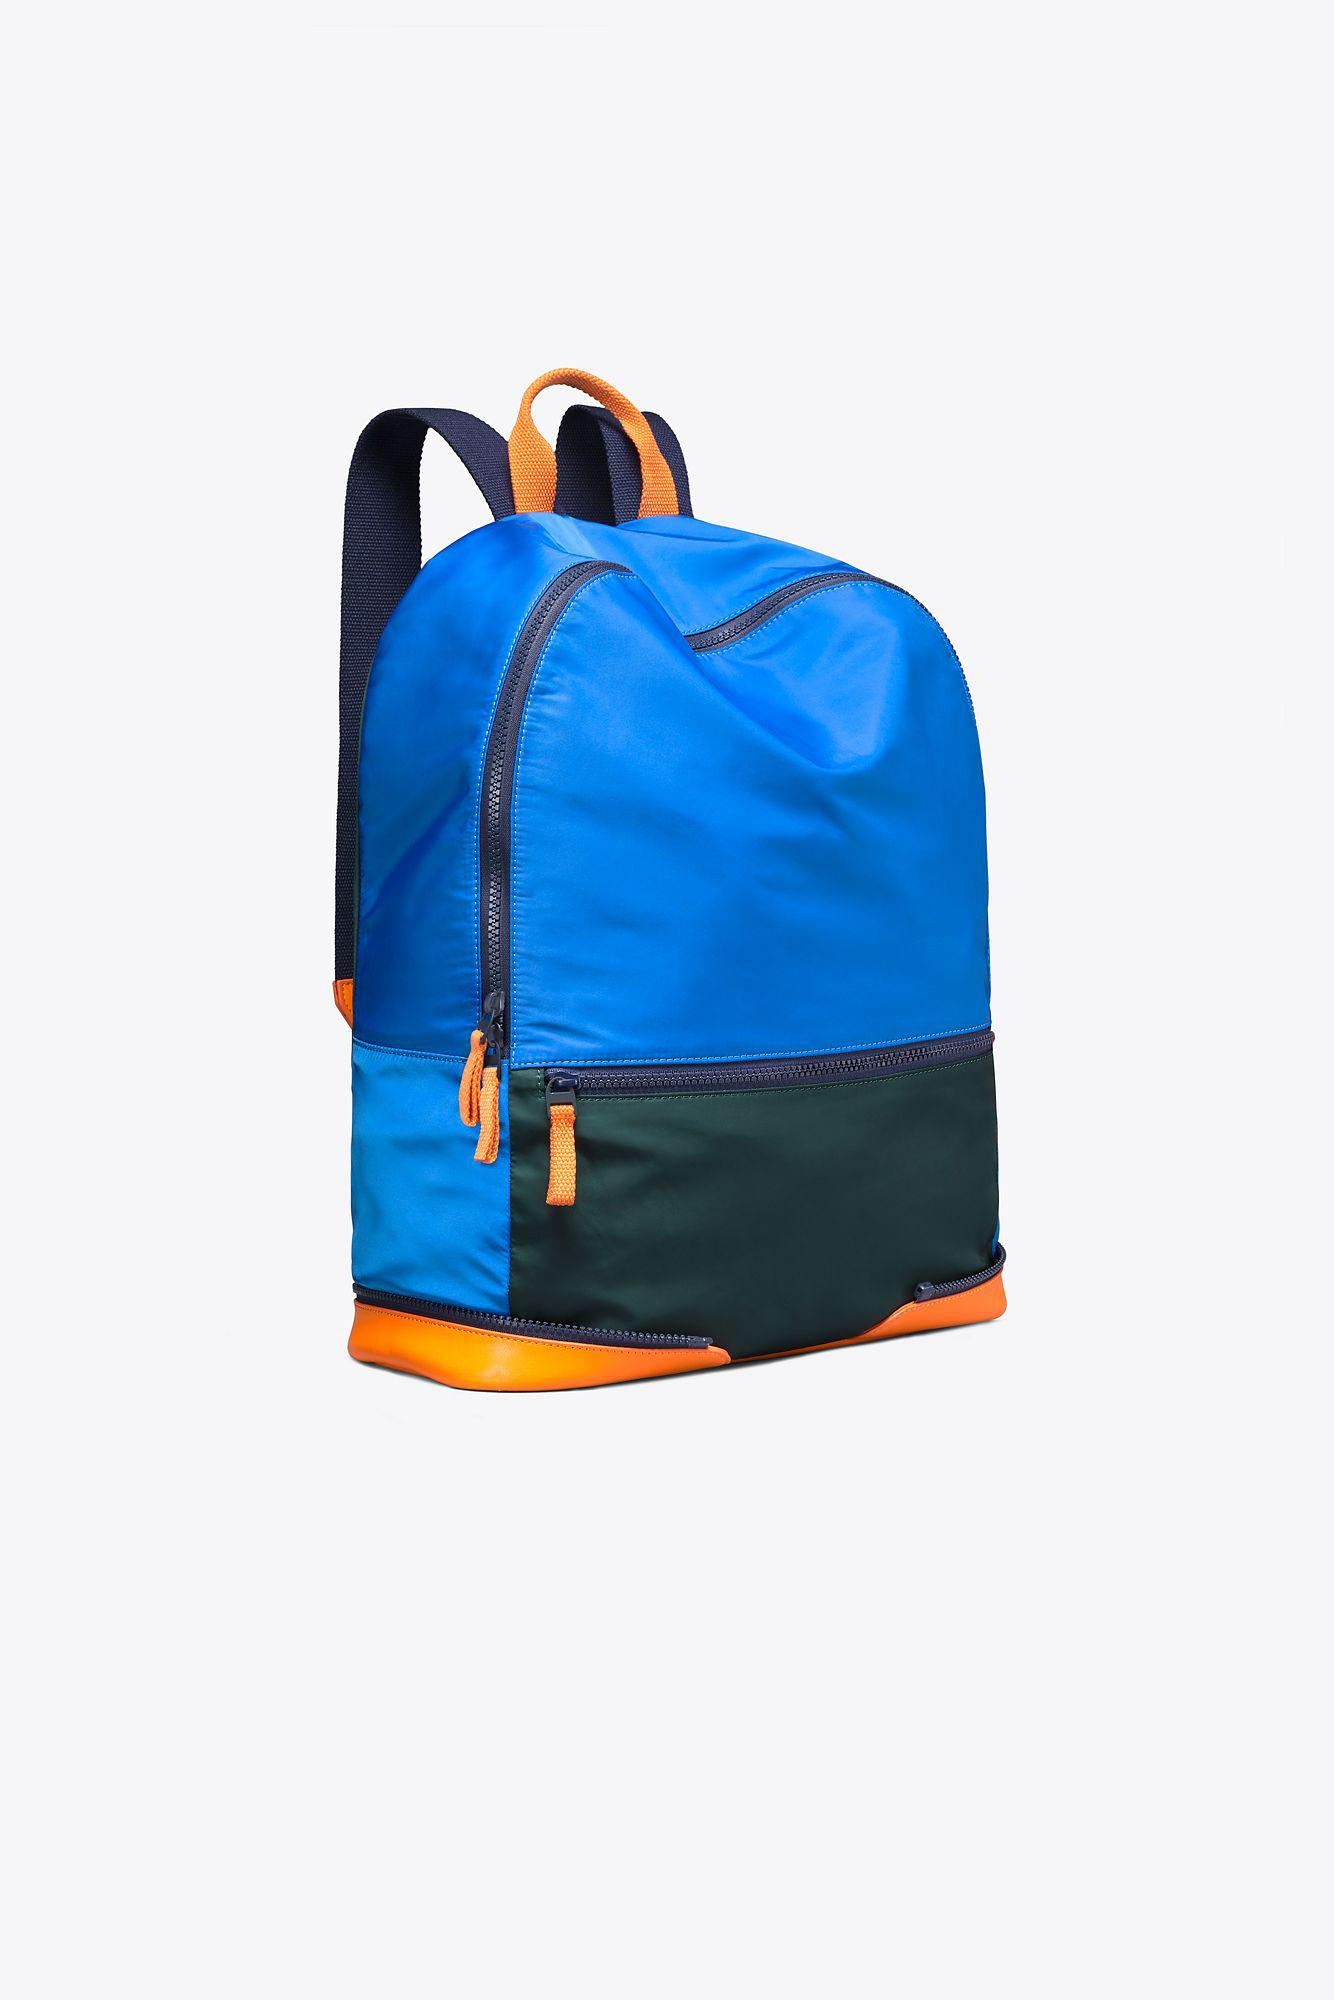 507cc0002ec Lyst - Tory Sport Tory Burch Color-block Packable Backpack in Blue